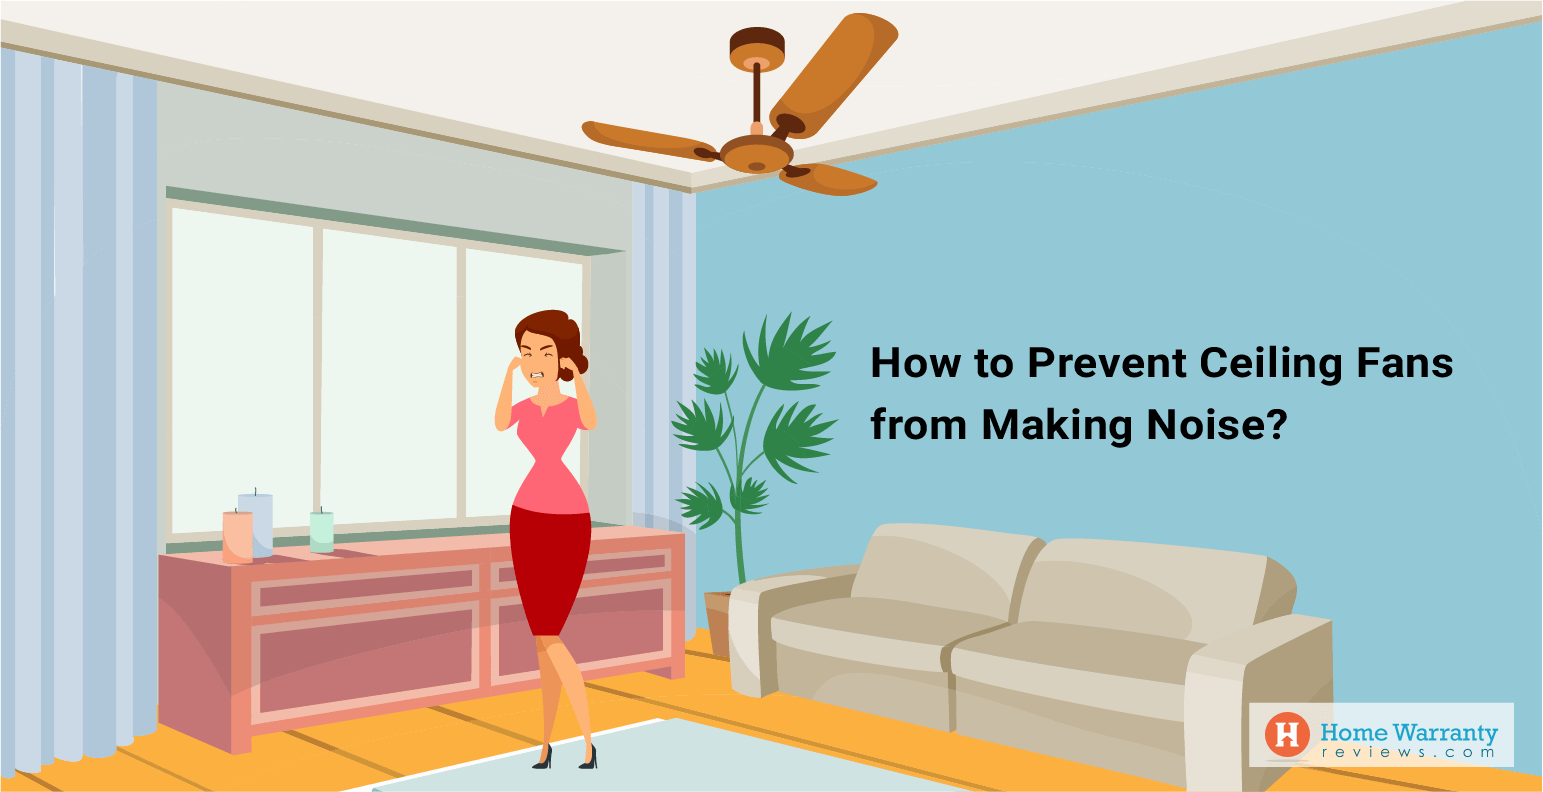 How to Prevent Ceiling Fans from Making Noise?